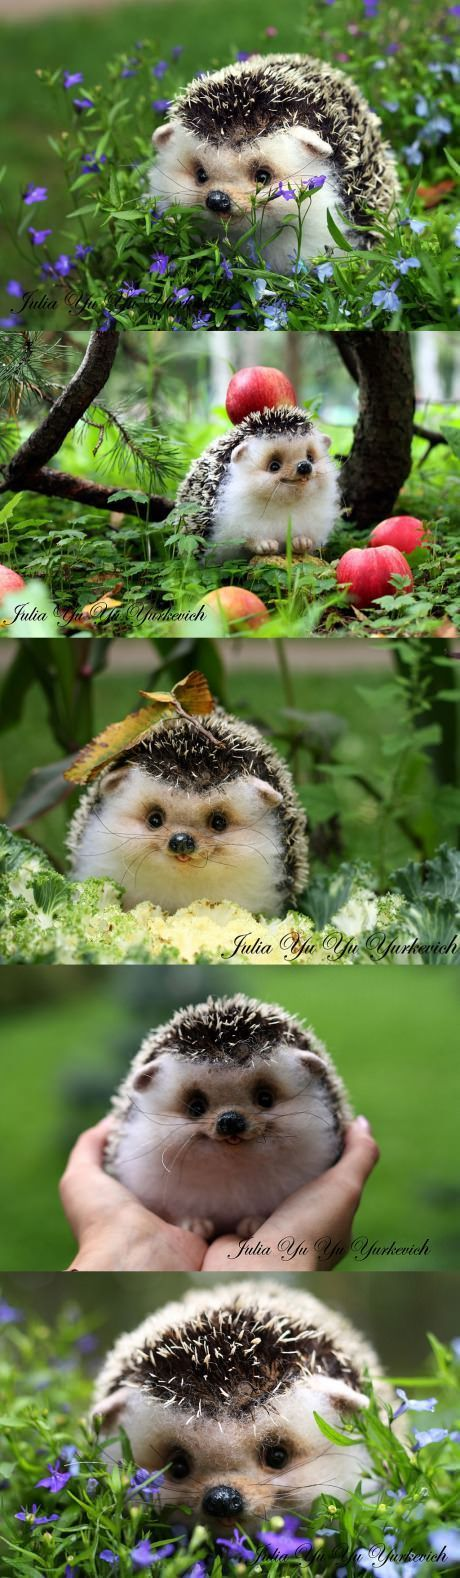 This is like the freaking happiest hedgehog ever.